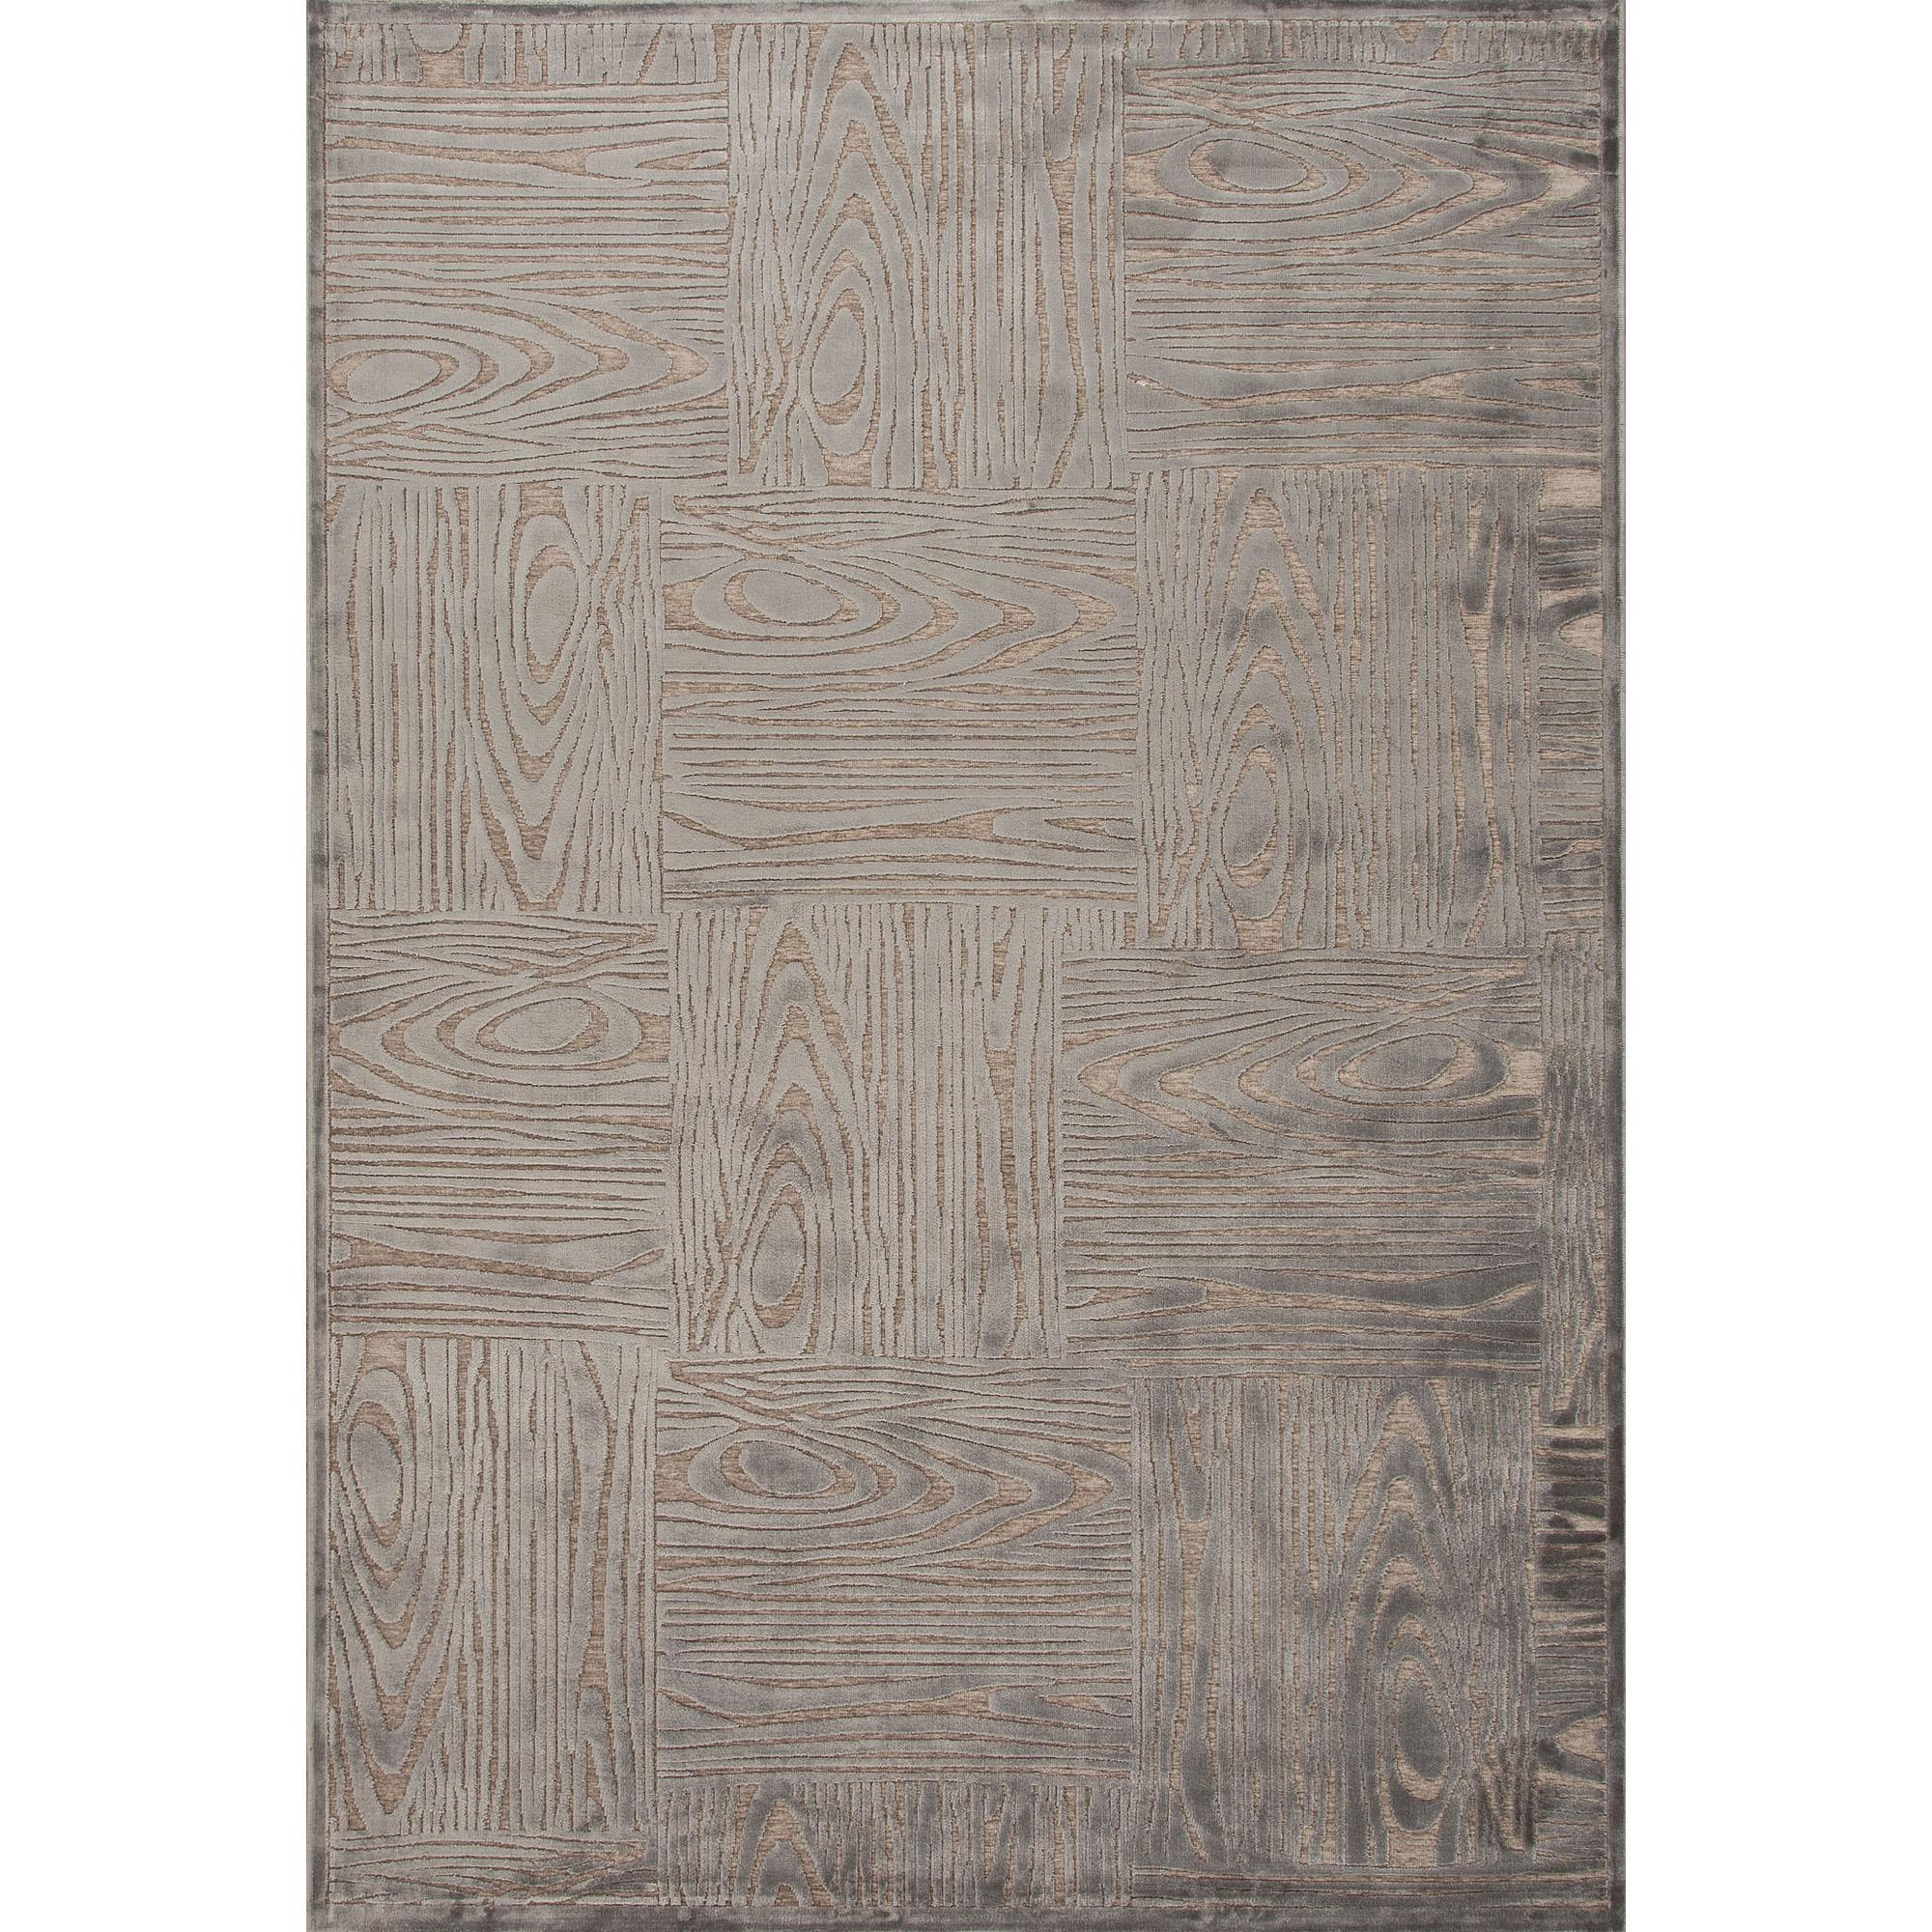 Fables 7.6 x 9.6 Rug by JAIPUR Living at Malouf Furniture Co.